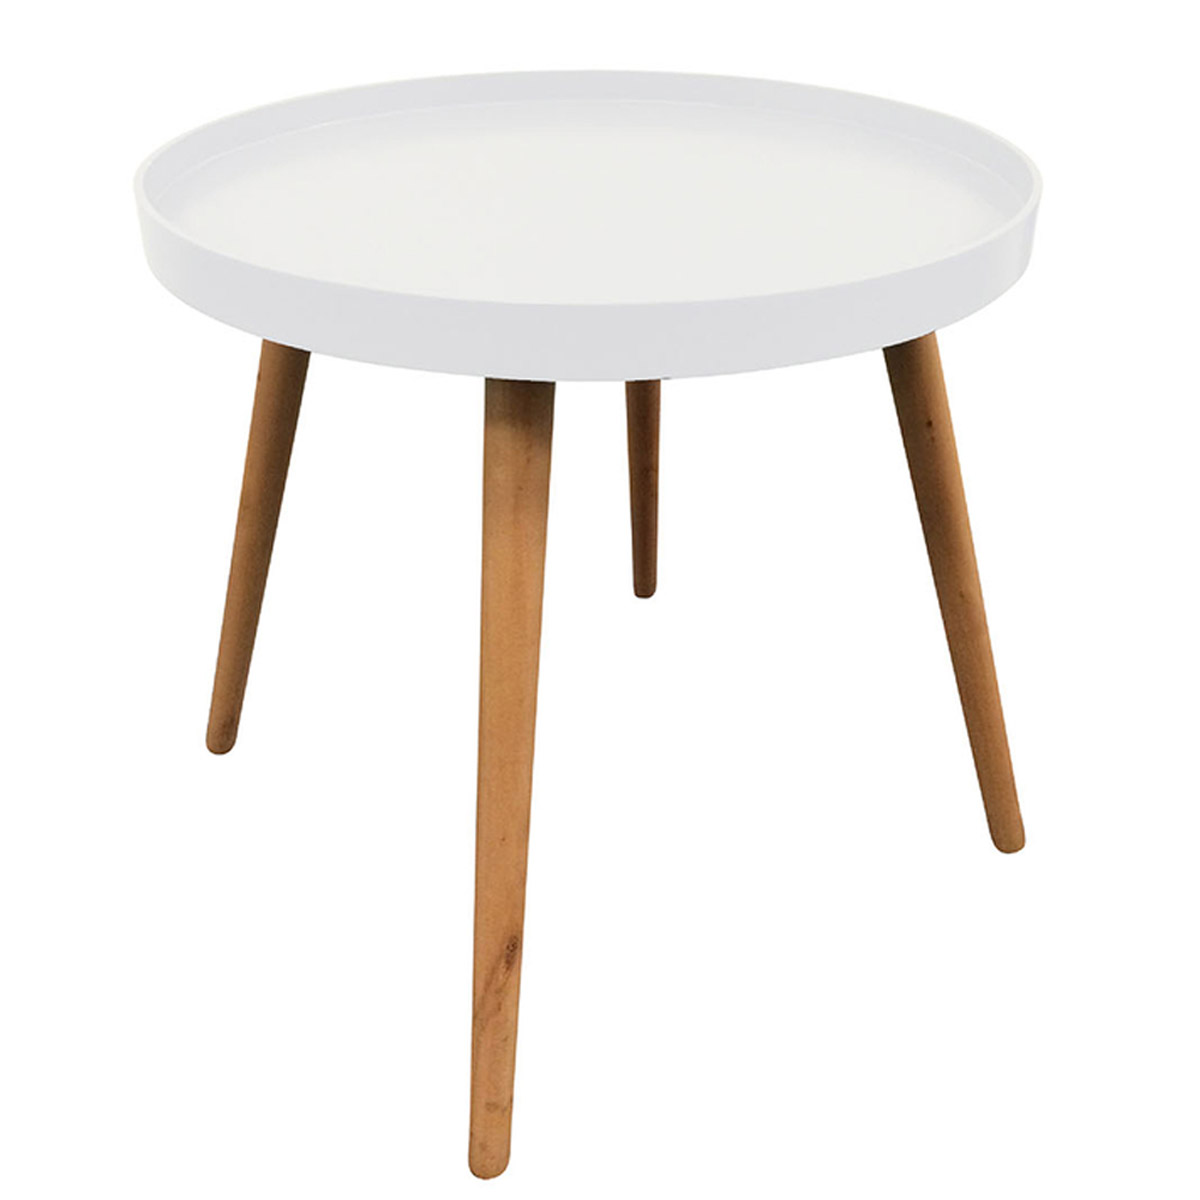 Table ronde bois \'Boho\' blanc - 50x44 cm - [R2394]